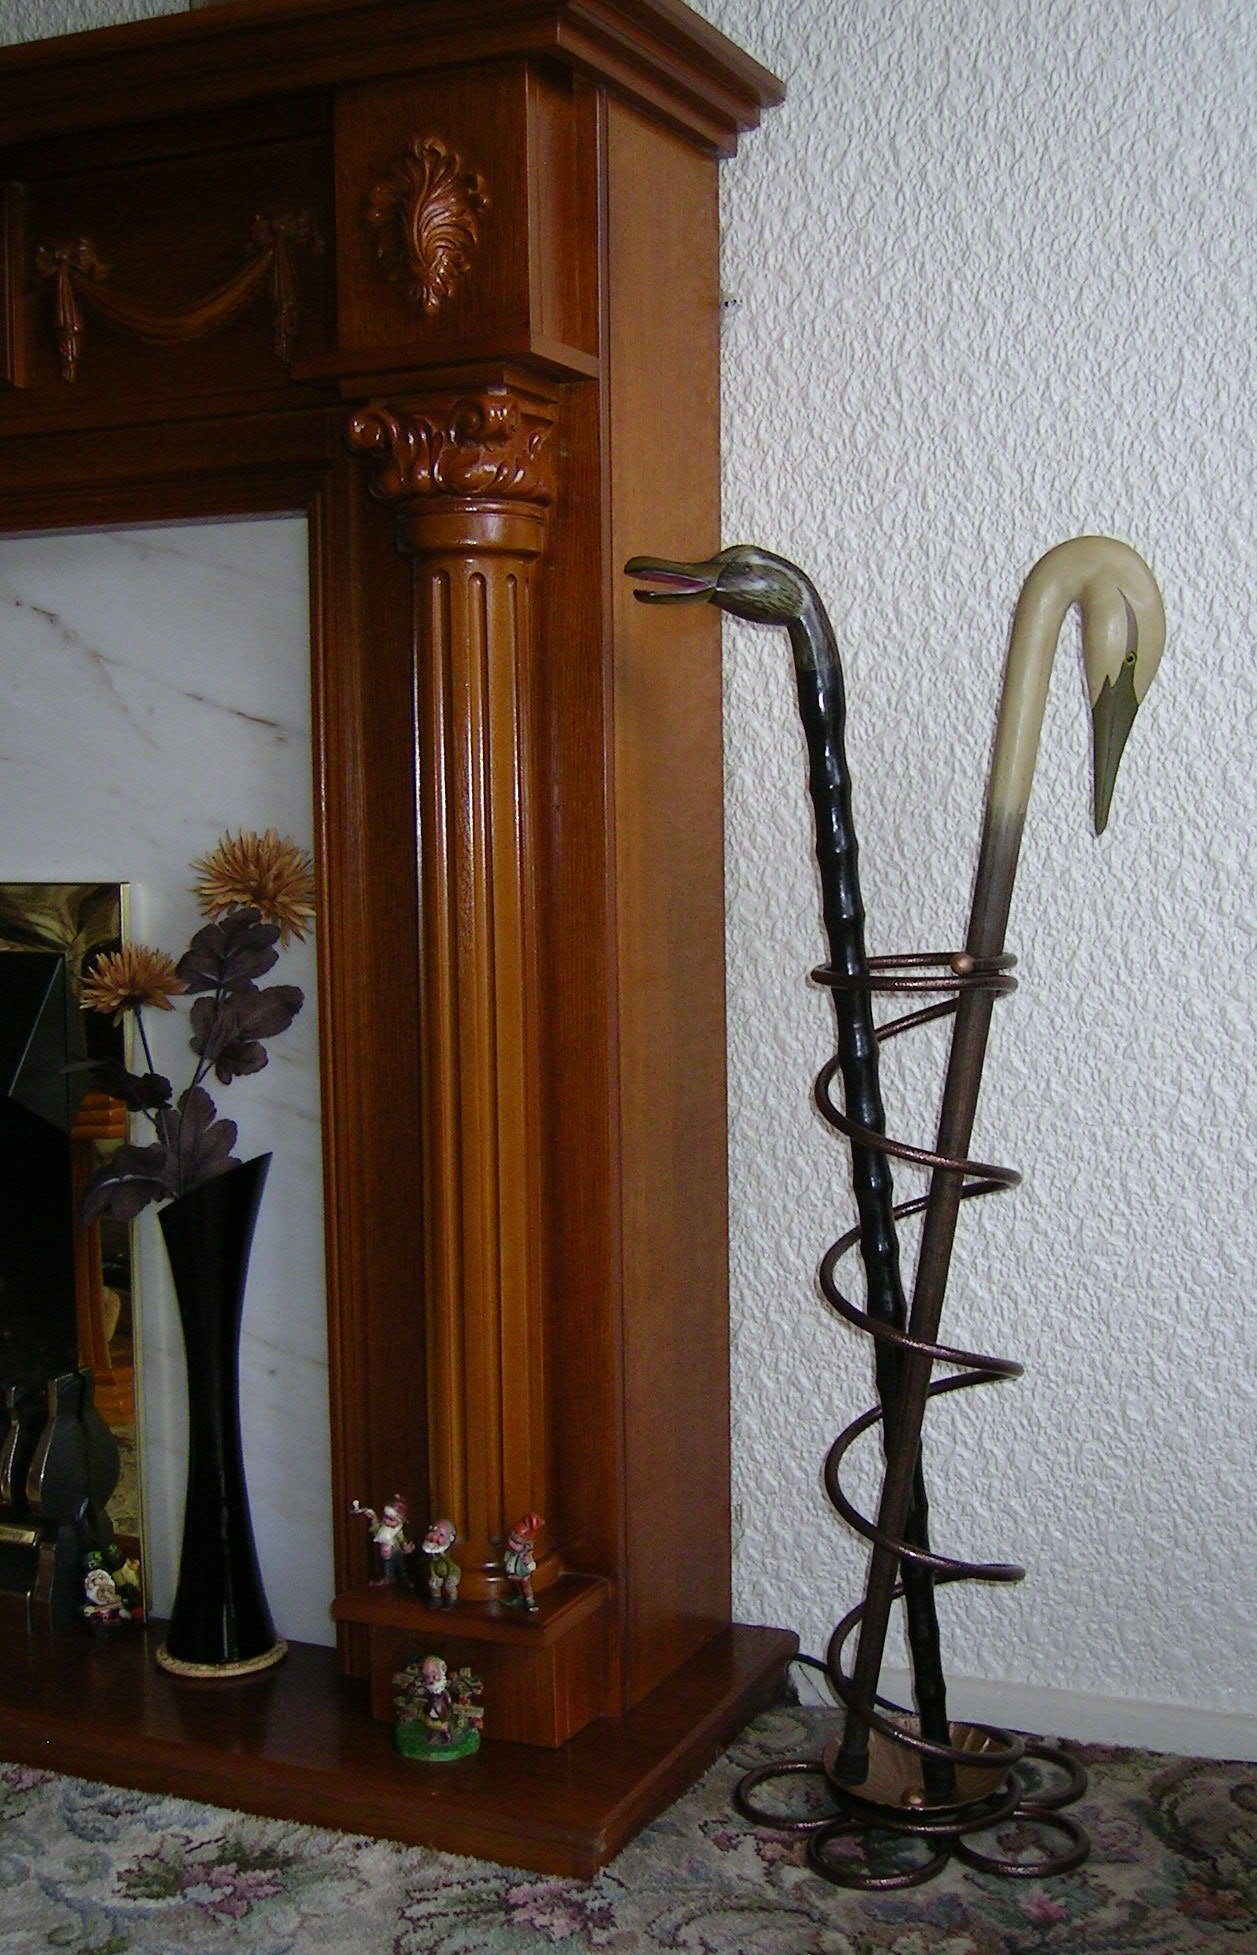 Hammered metallic bronze Umbrella Walking stick Stand by Cool Engineered Art by Cool Engineered Art